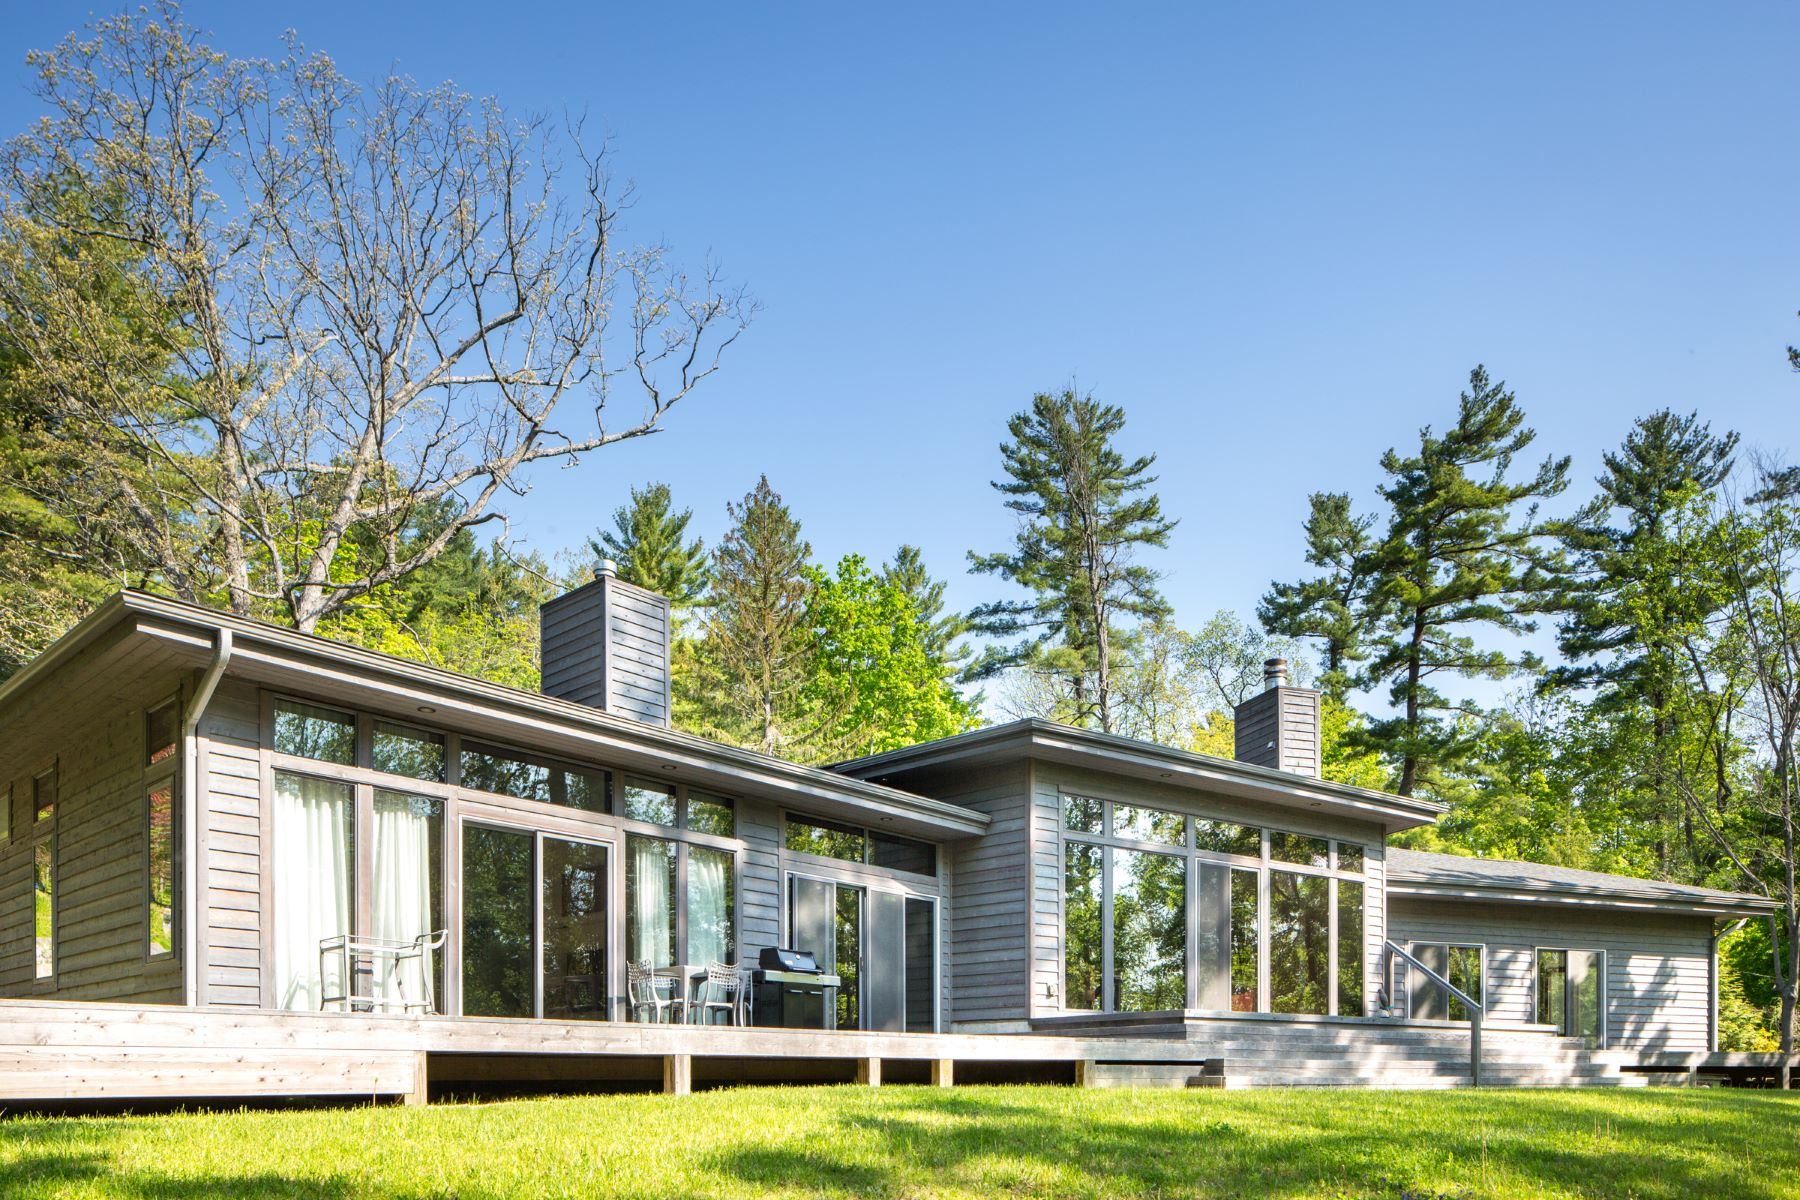 Single Family Home for Sale at Chic, Custom-designed Contemporary on The Hill 15 Berkshire Heights Rd Great Barrington, Massachusetts 01230 United States